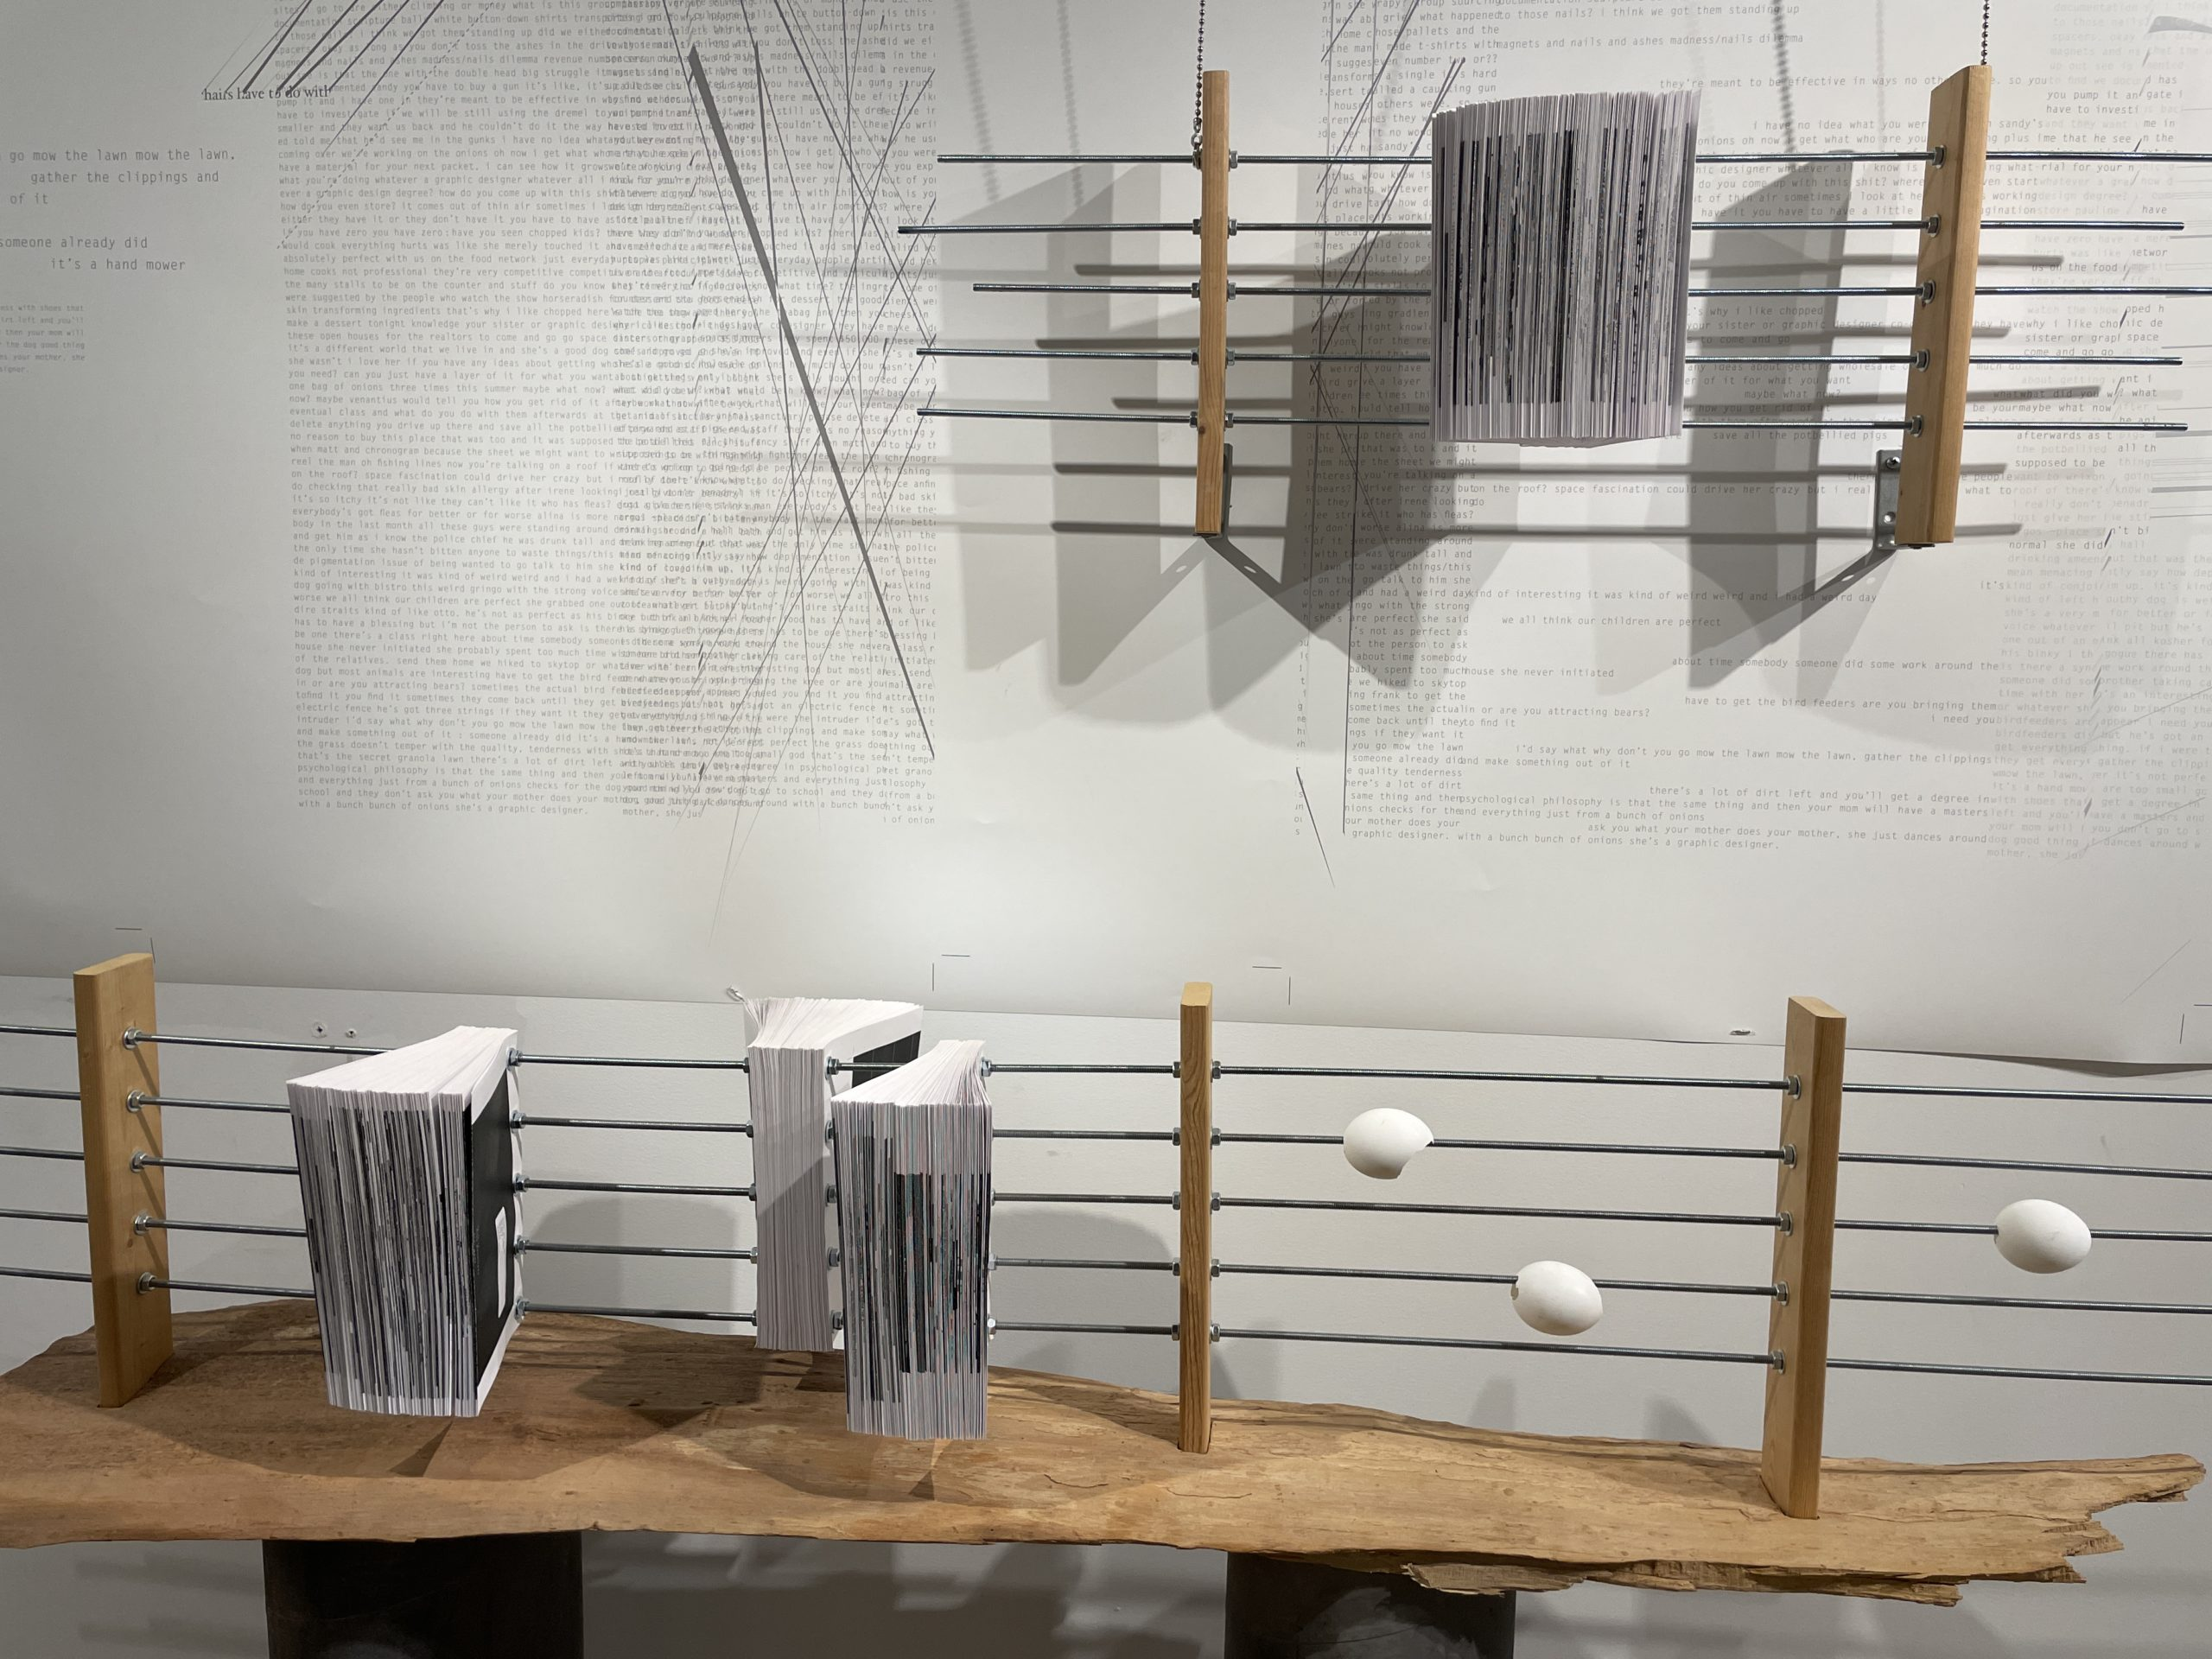 books pierced with metal rods and eggshells